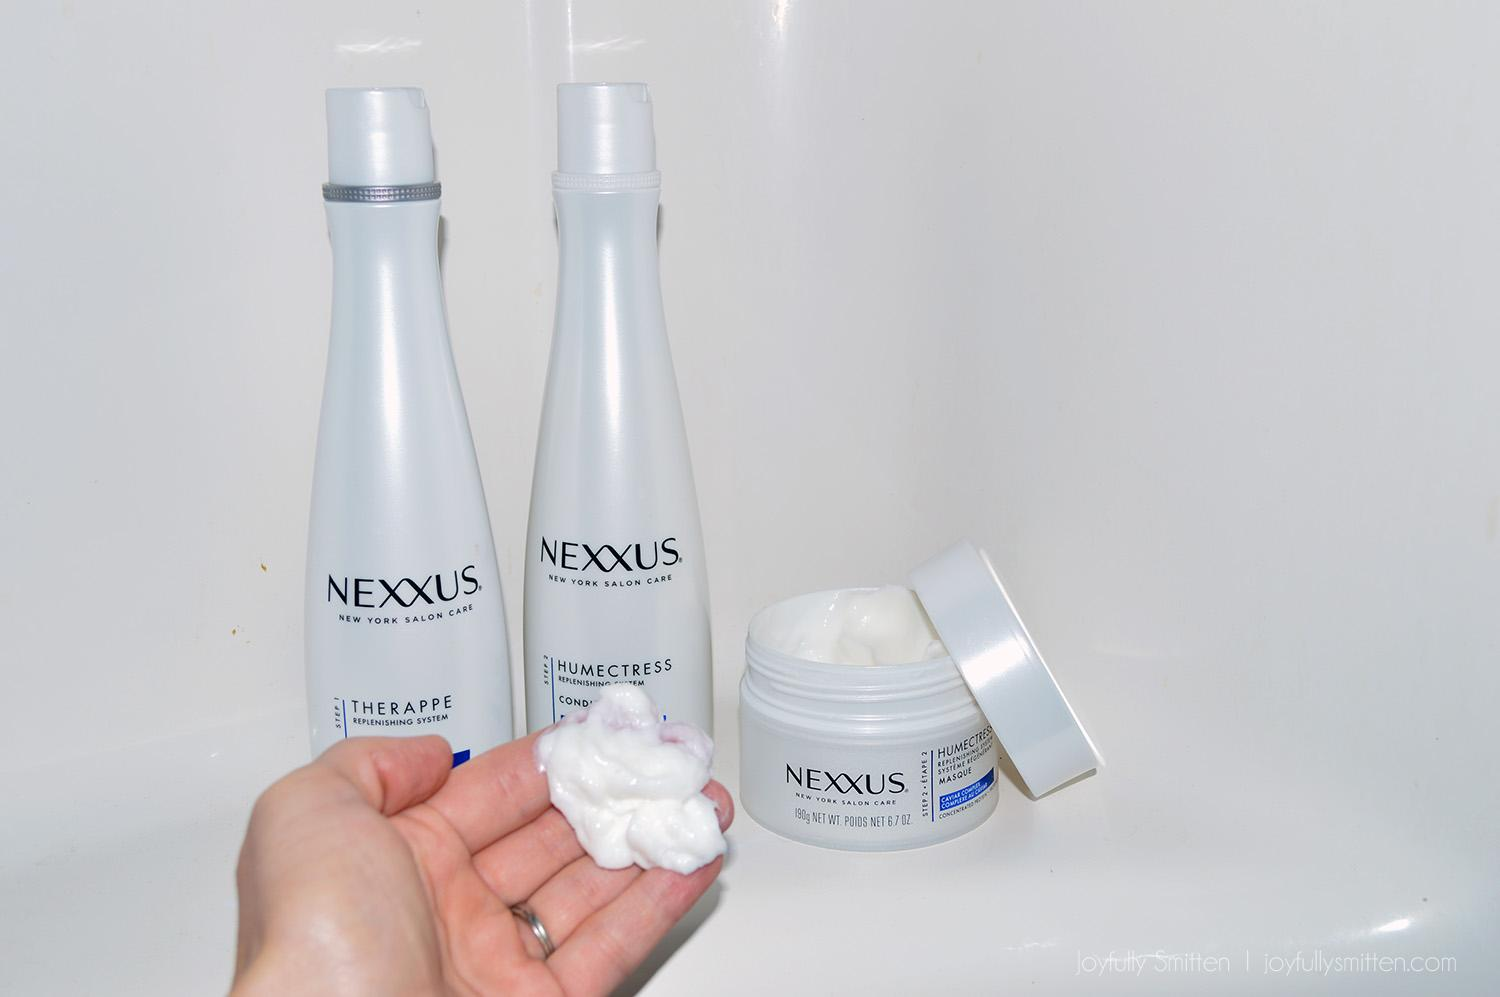 Nexxus Joyfully Smitten _ Shampoo and Conditioner